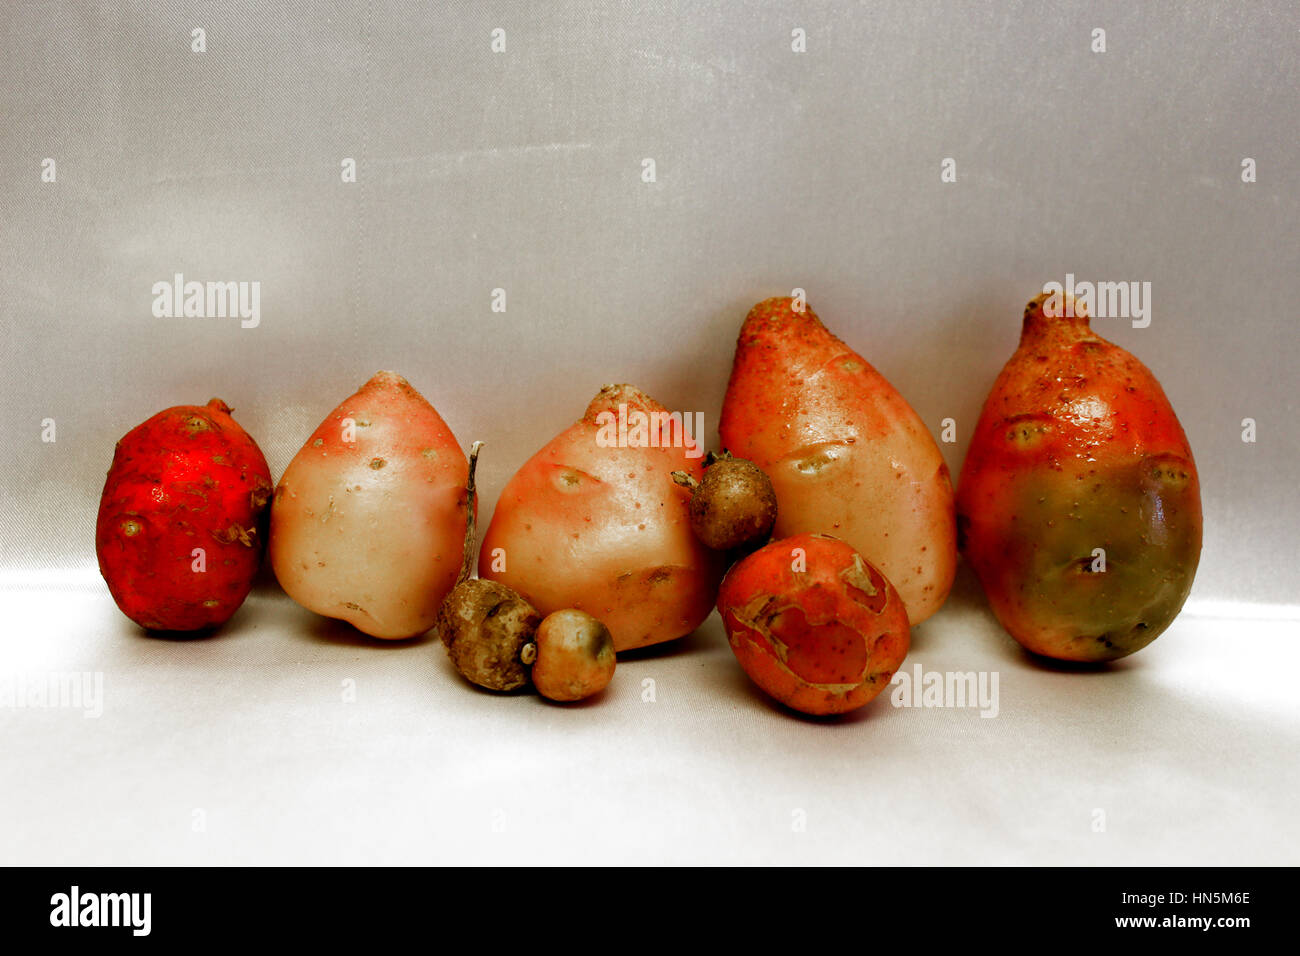 Potato Family of 5 With Pets Number 21 of 47 - Stock Image